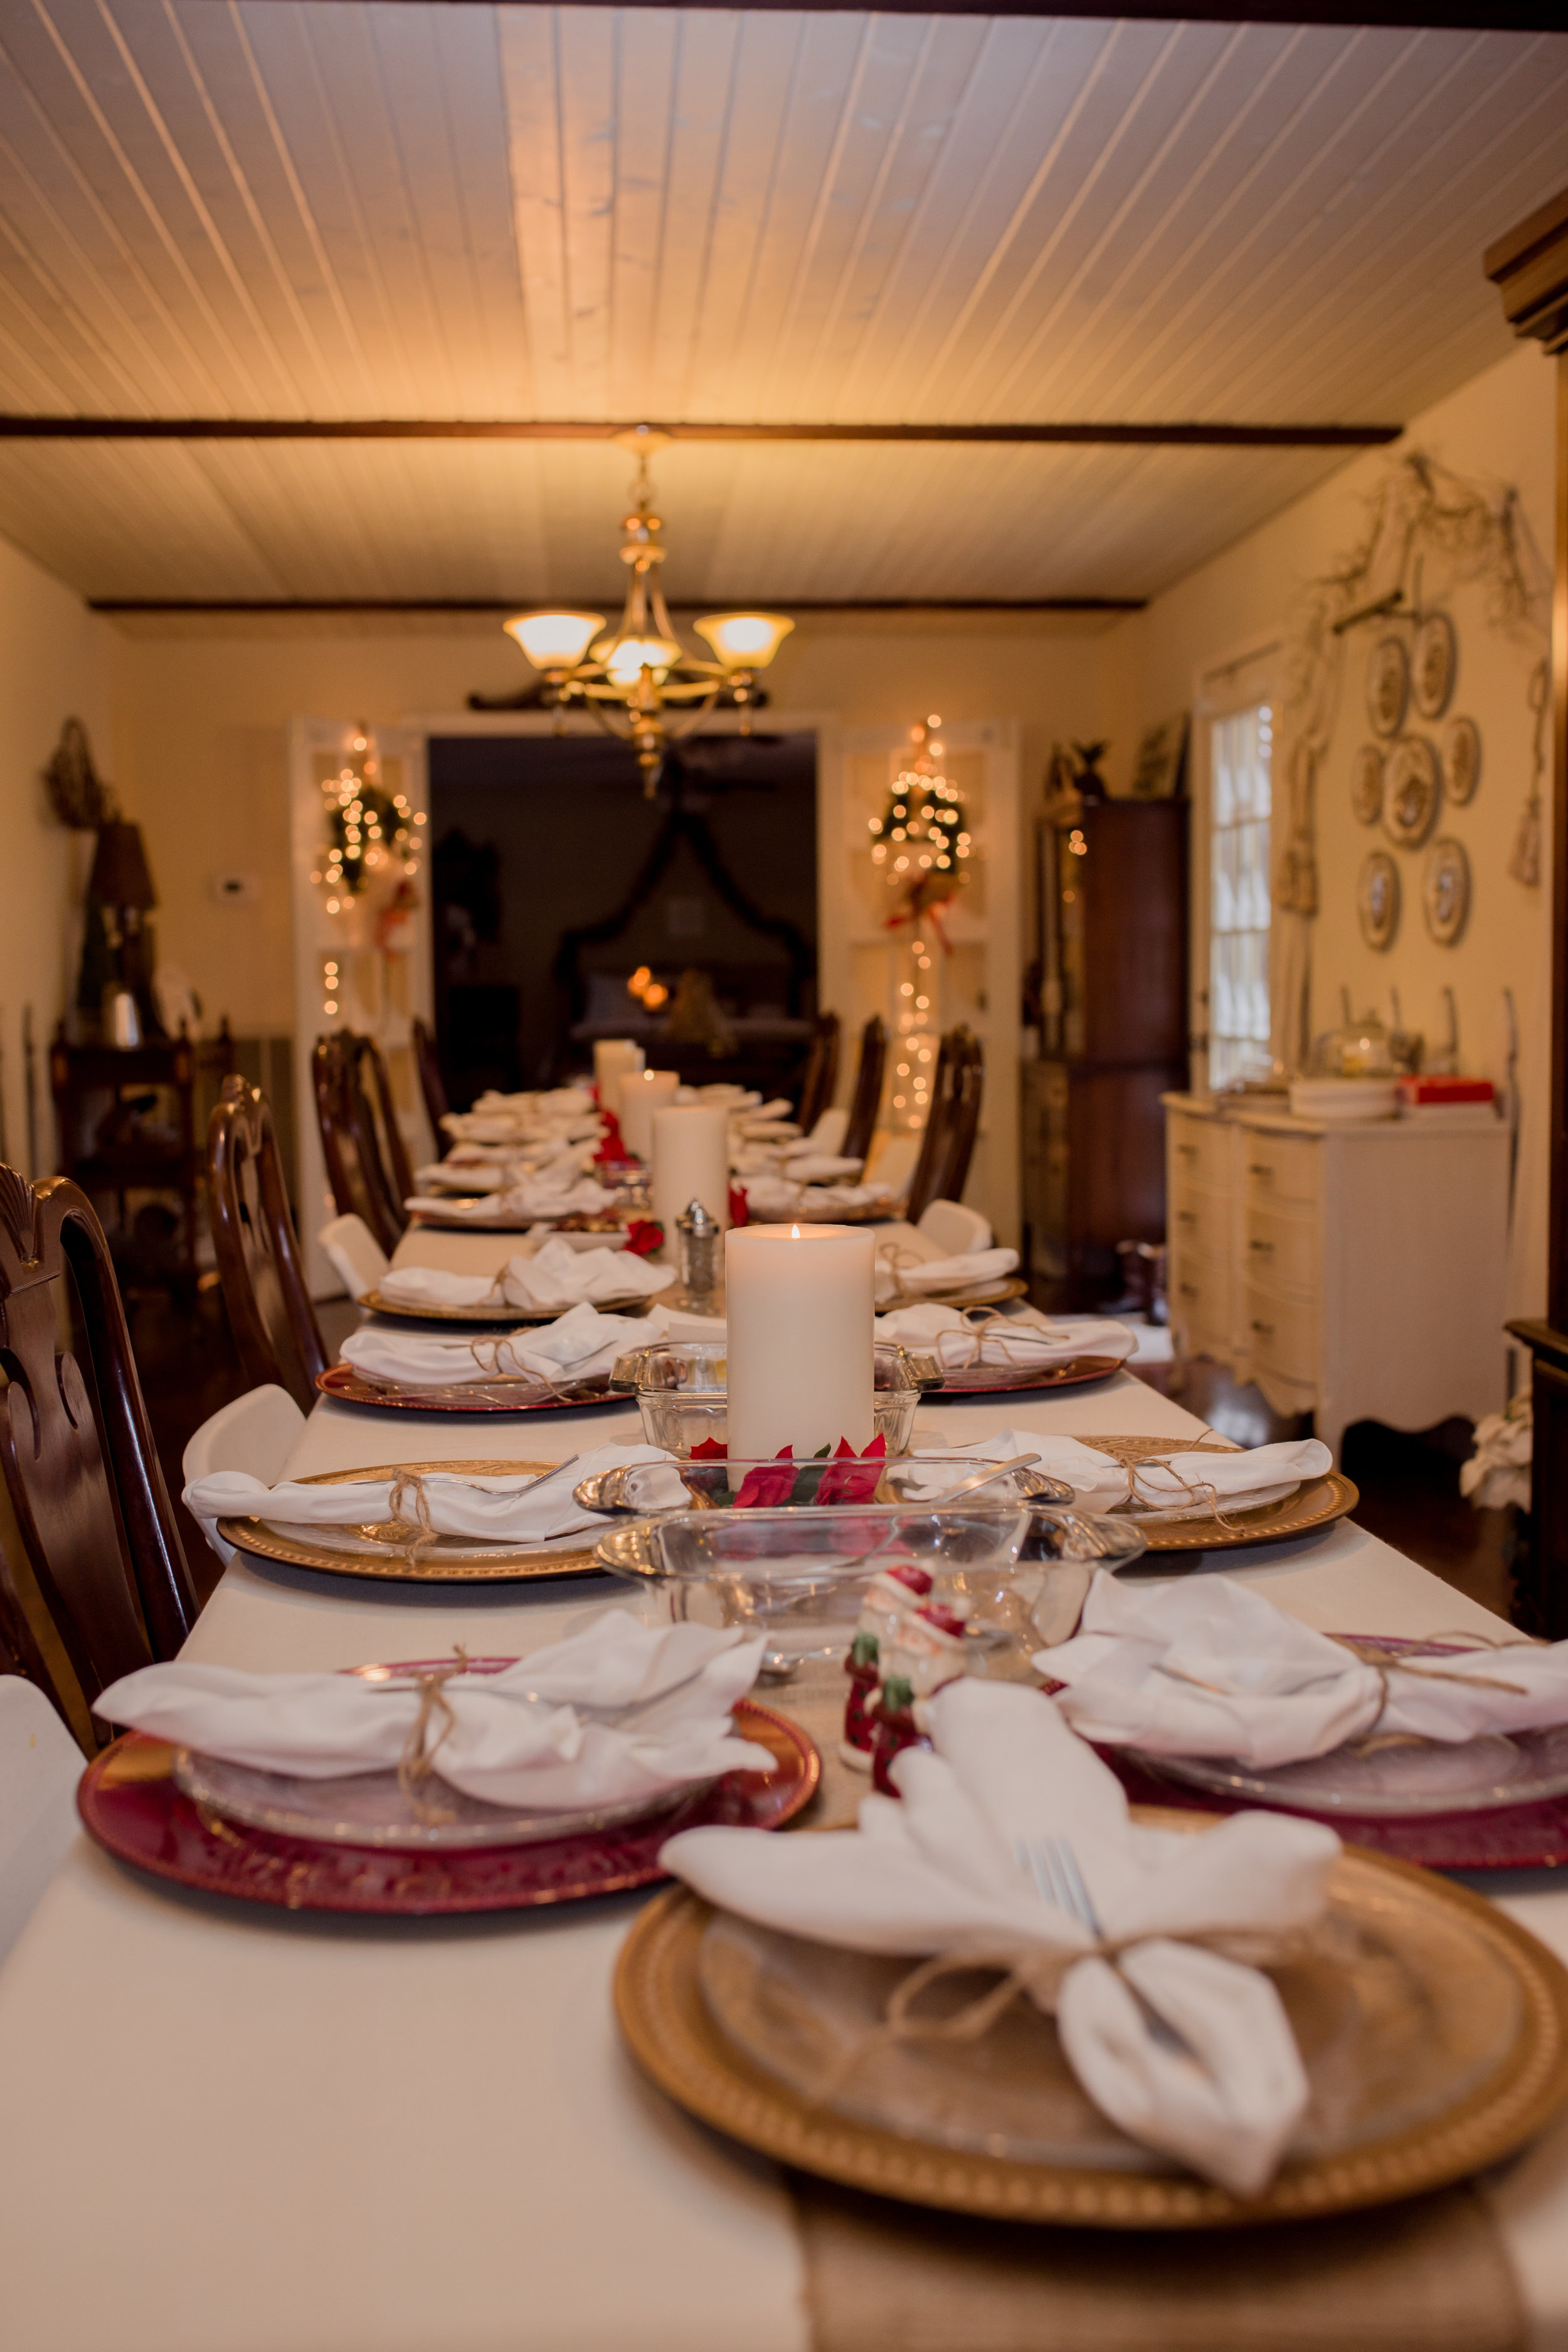 Christmas at my mom's.....her decor looked so great!! She had a table set for all 23 members of our immediate family.....it was so wonderful to get to sit together and enjoy a wonderful dinner!